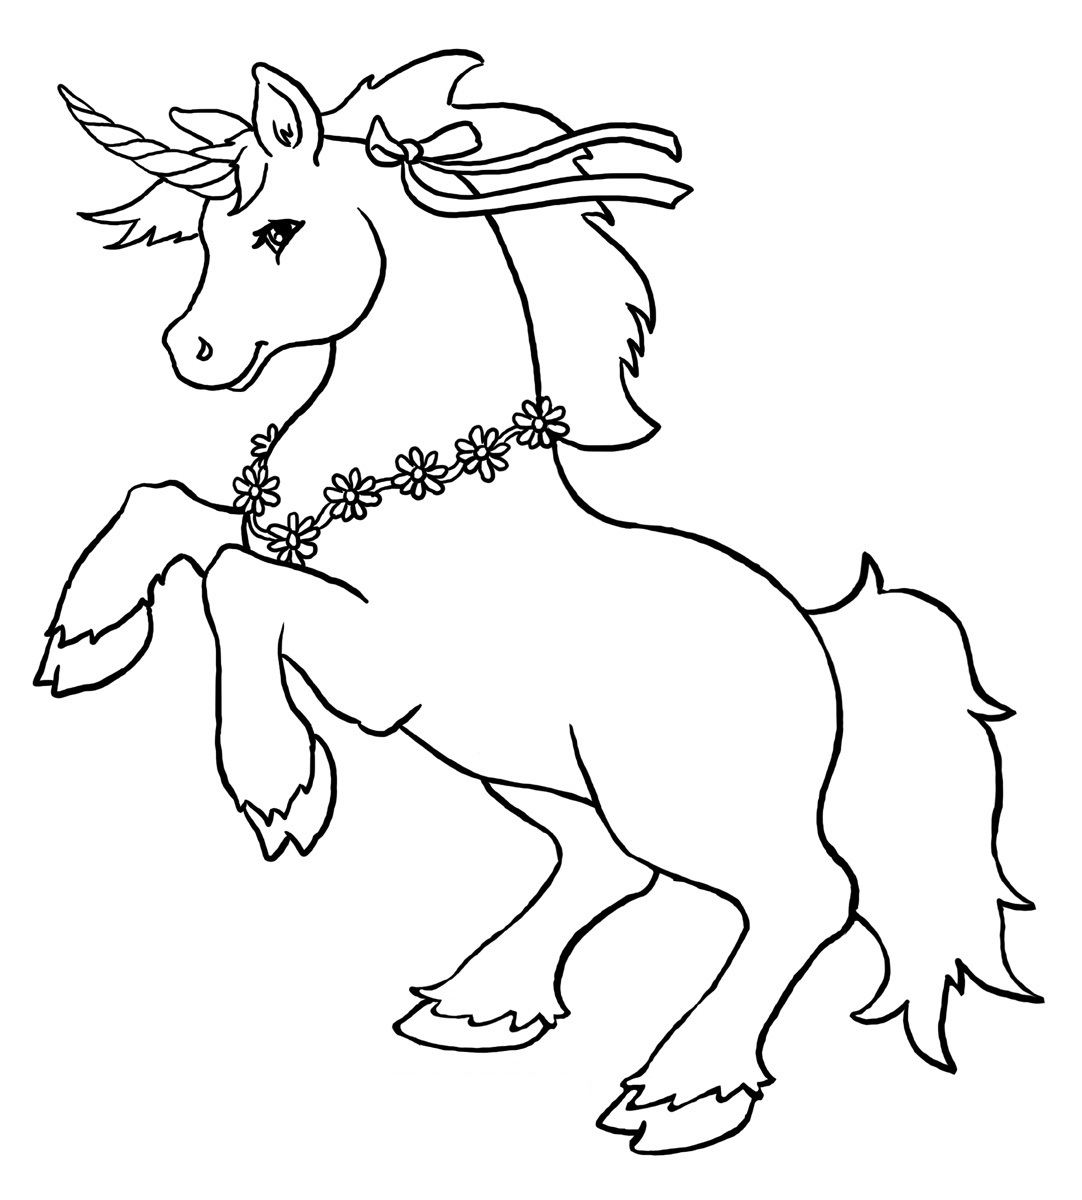 cute unicorn coloring pages - Coloring Pages Unicorns Printable